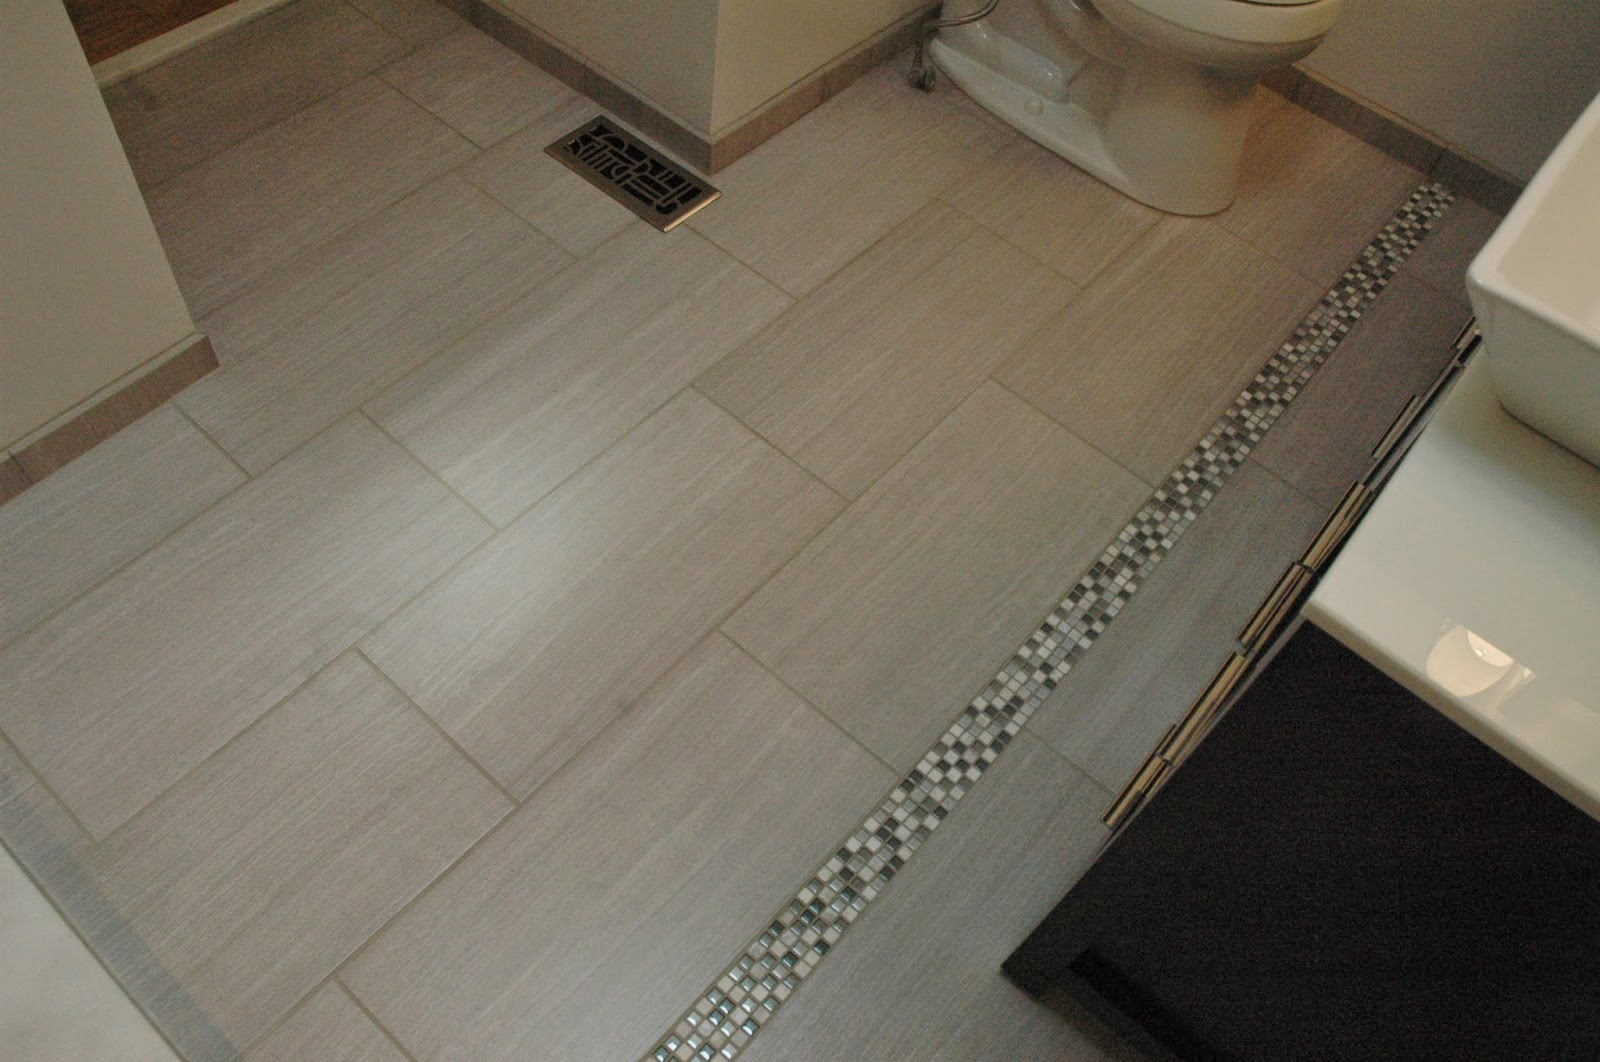 Tile With Decorative Mosaic Inlay In Floor For Bathroom Floor